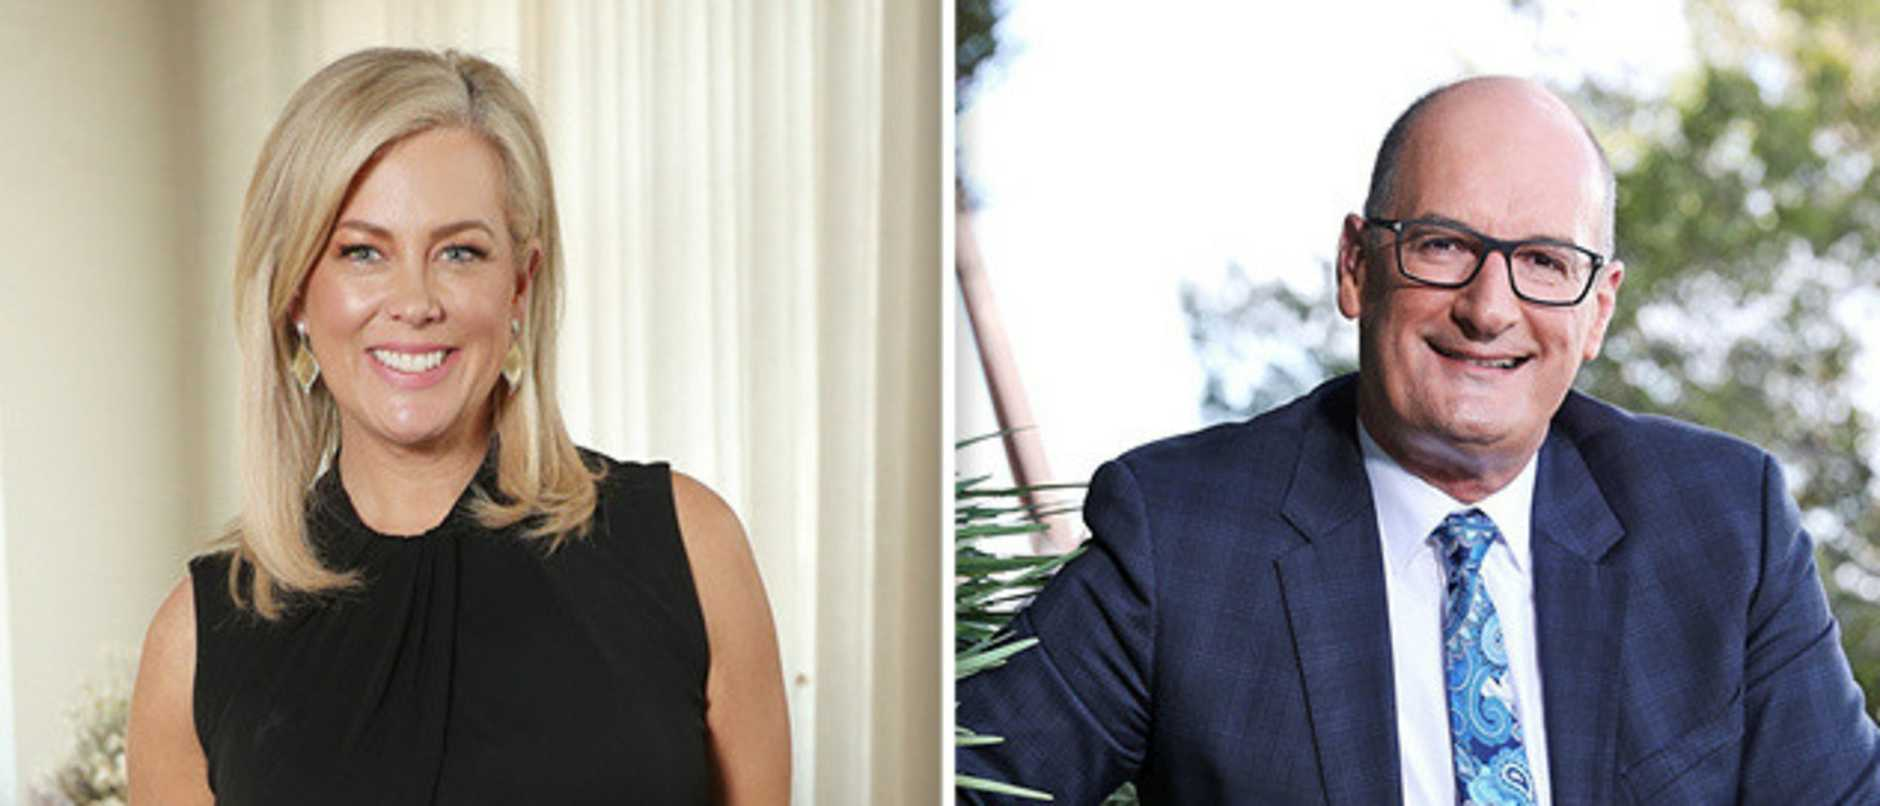 Sunrise presenters Samantha Armytage and David Koch have been enjoying a cushy four-day-a-week roster for some time, but that's over due to the ratings war.